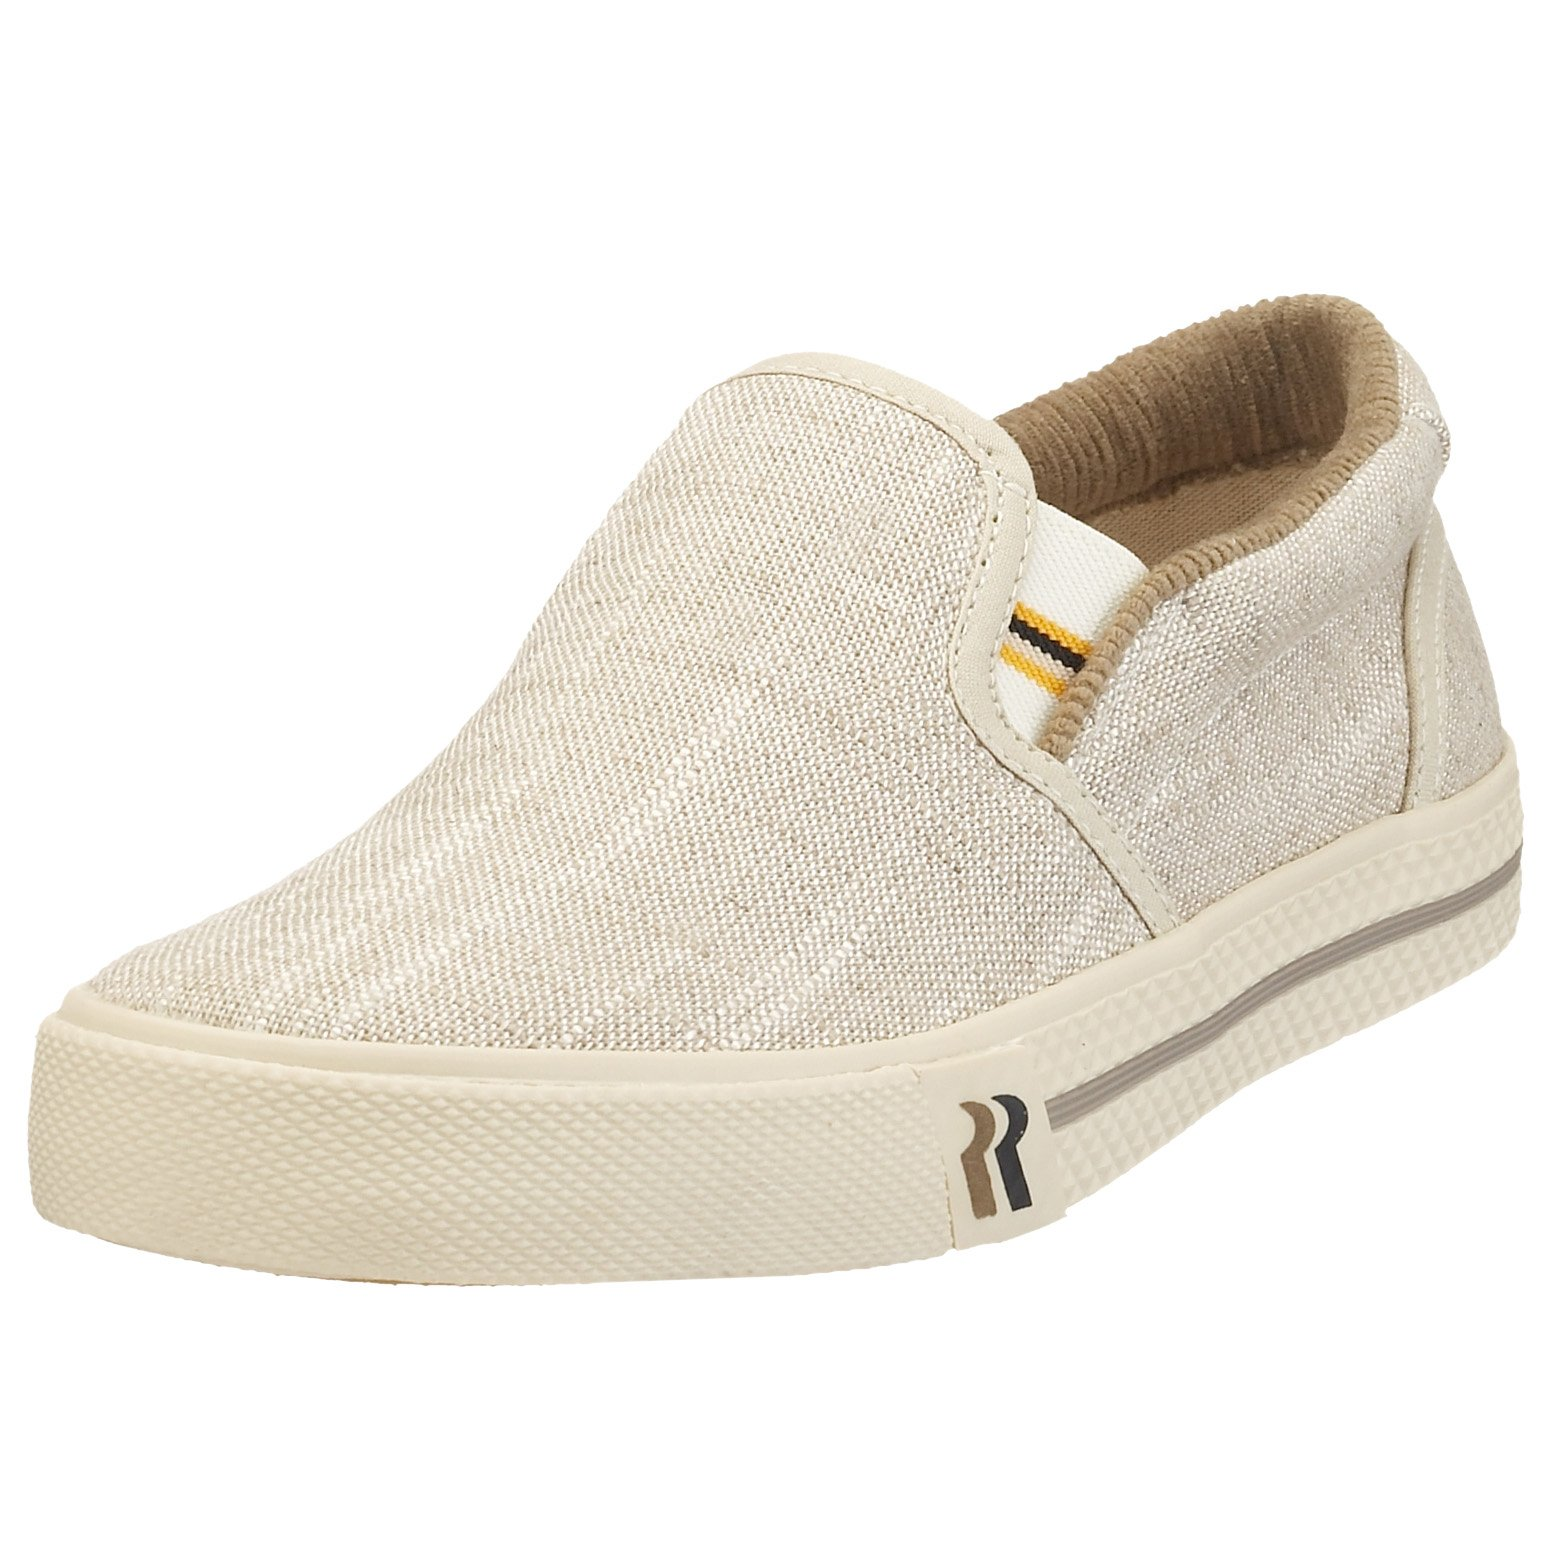 Mixte freizeit 20137 Mode slipperMode Romika Laser Baskets Unisex AdulteBeigenatur u FKJ13lcuT